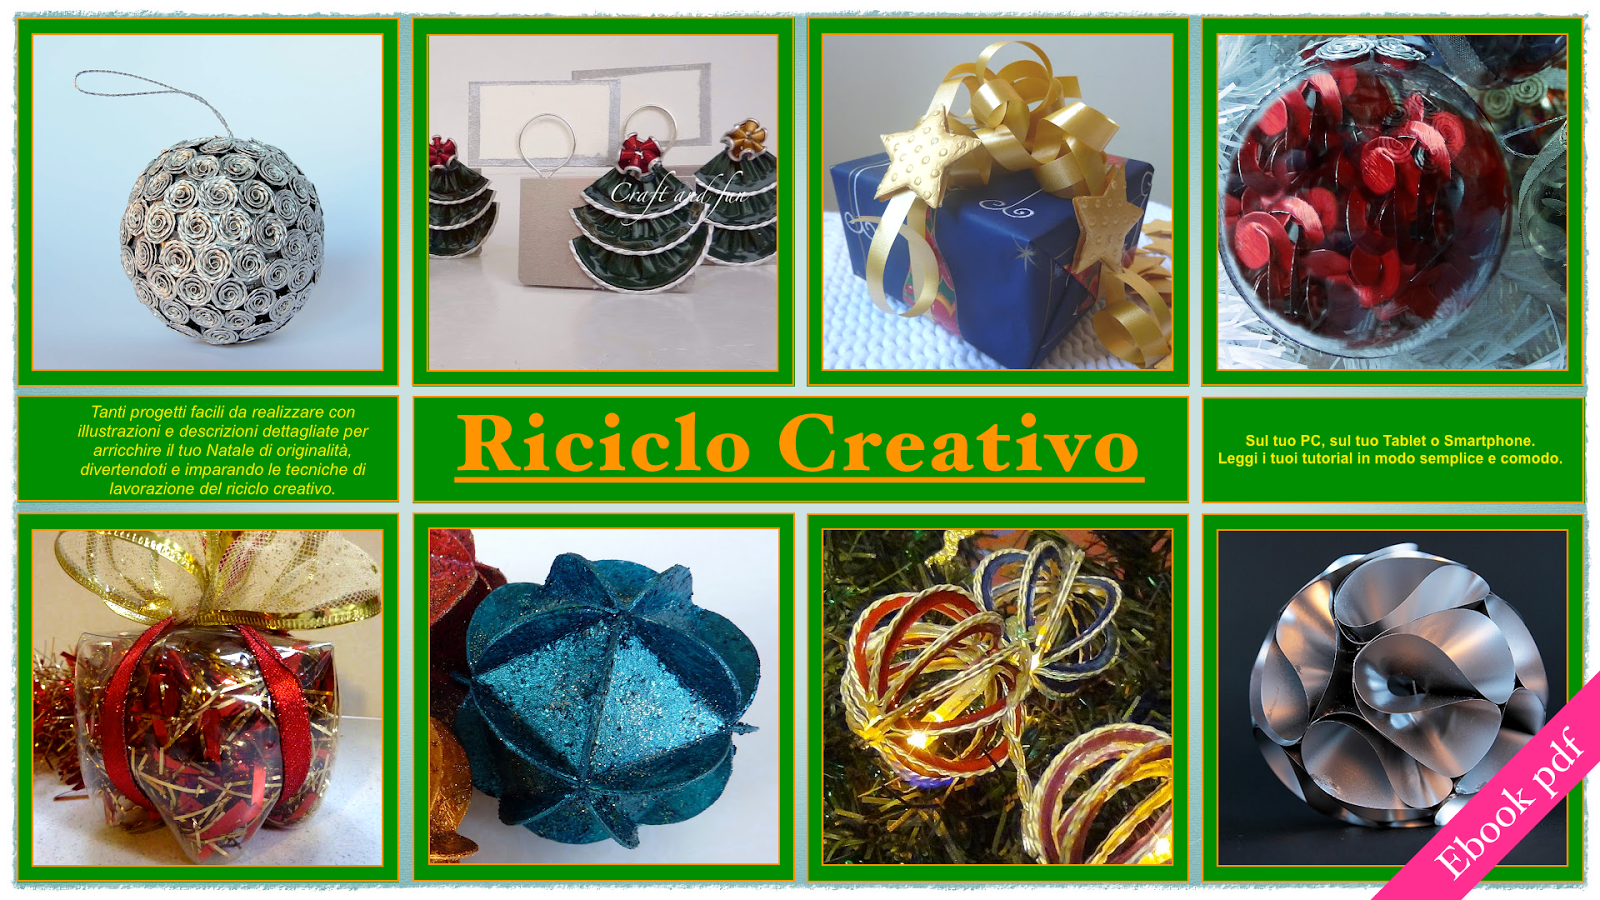 Riciclo creativo craft and fun idee natalizie da creare - Decorazioni di natale con materiale riciclato ...